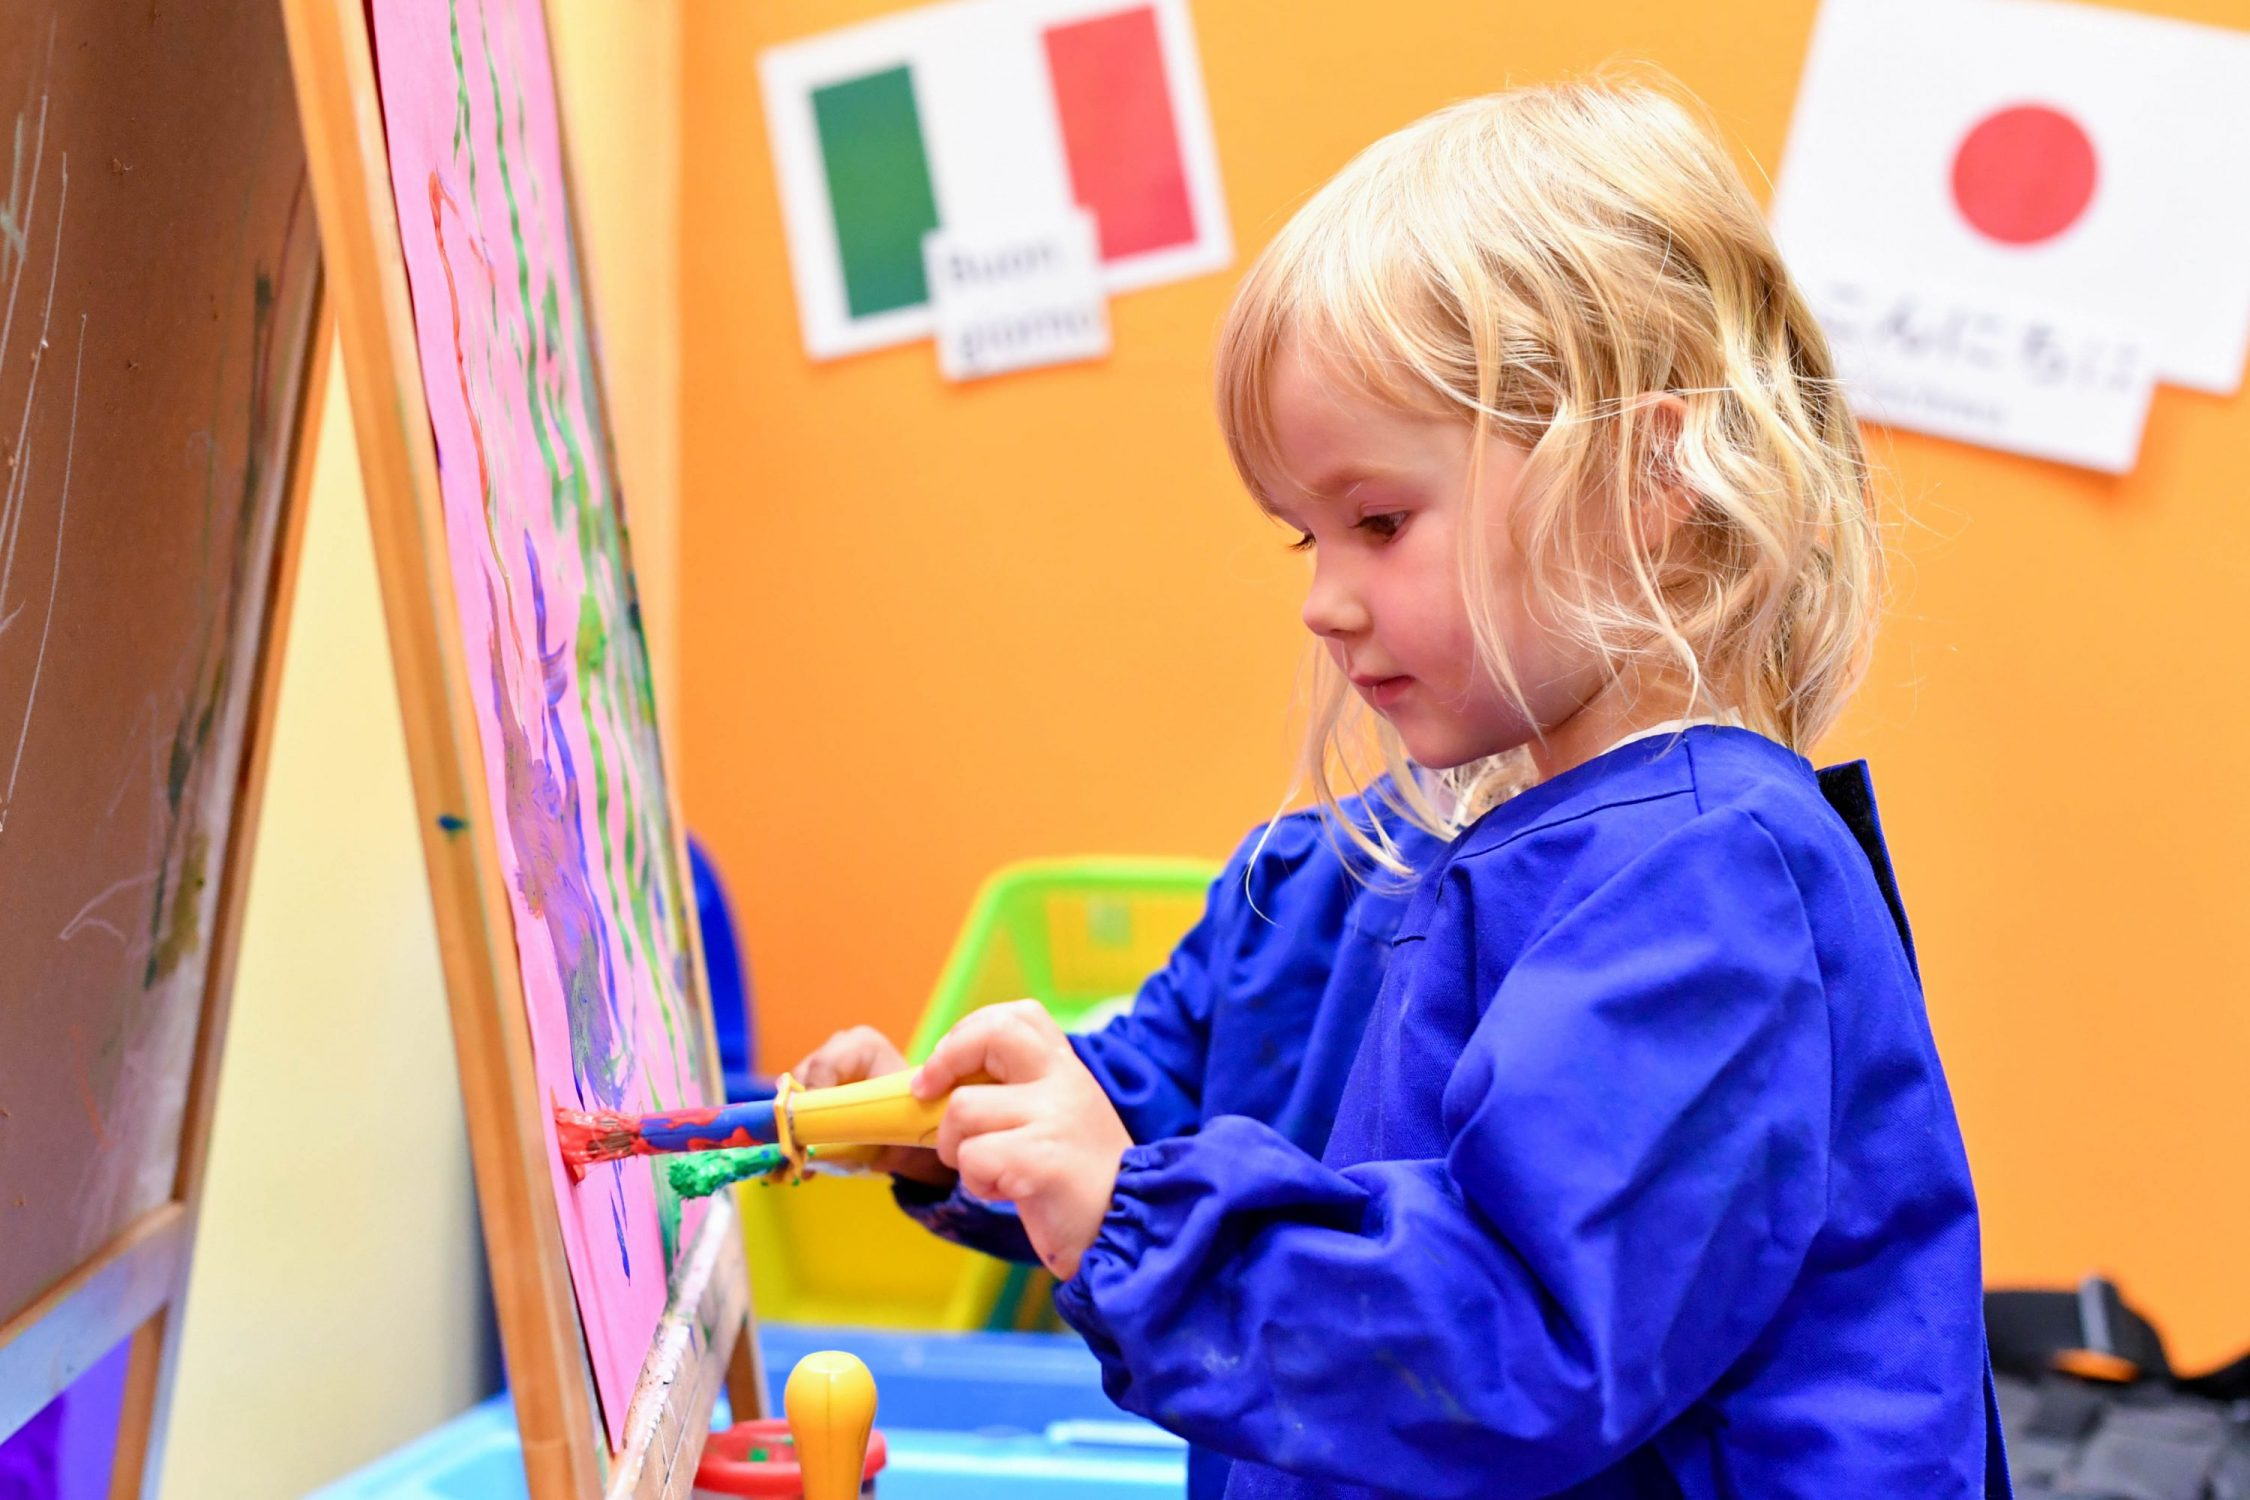 Child in classroom painting with paintbrush and easel